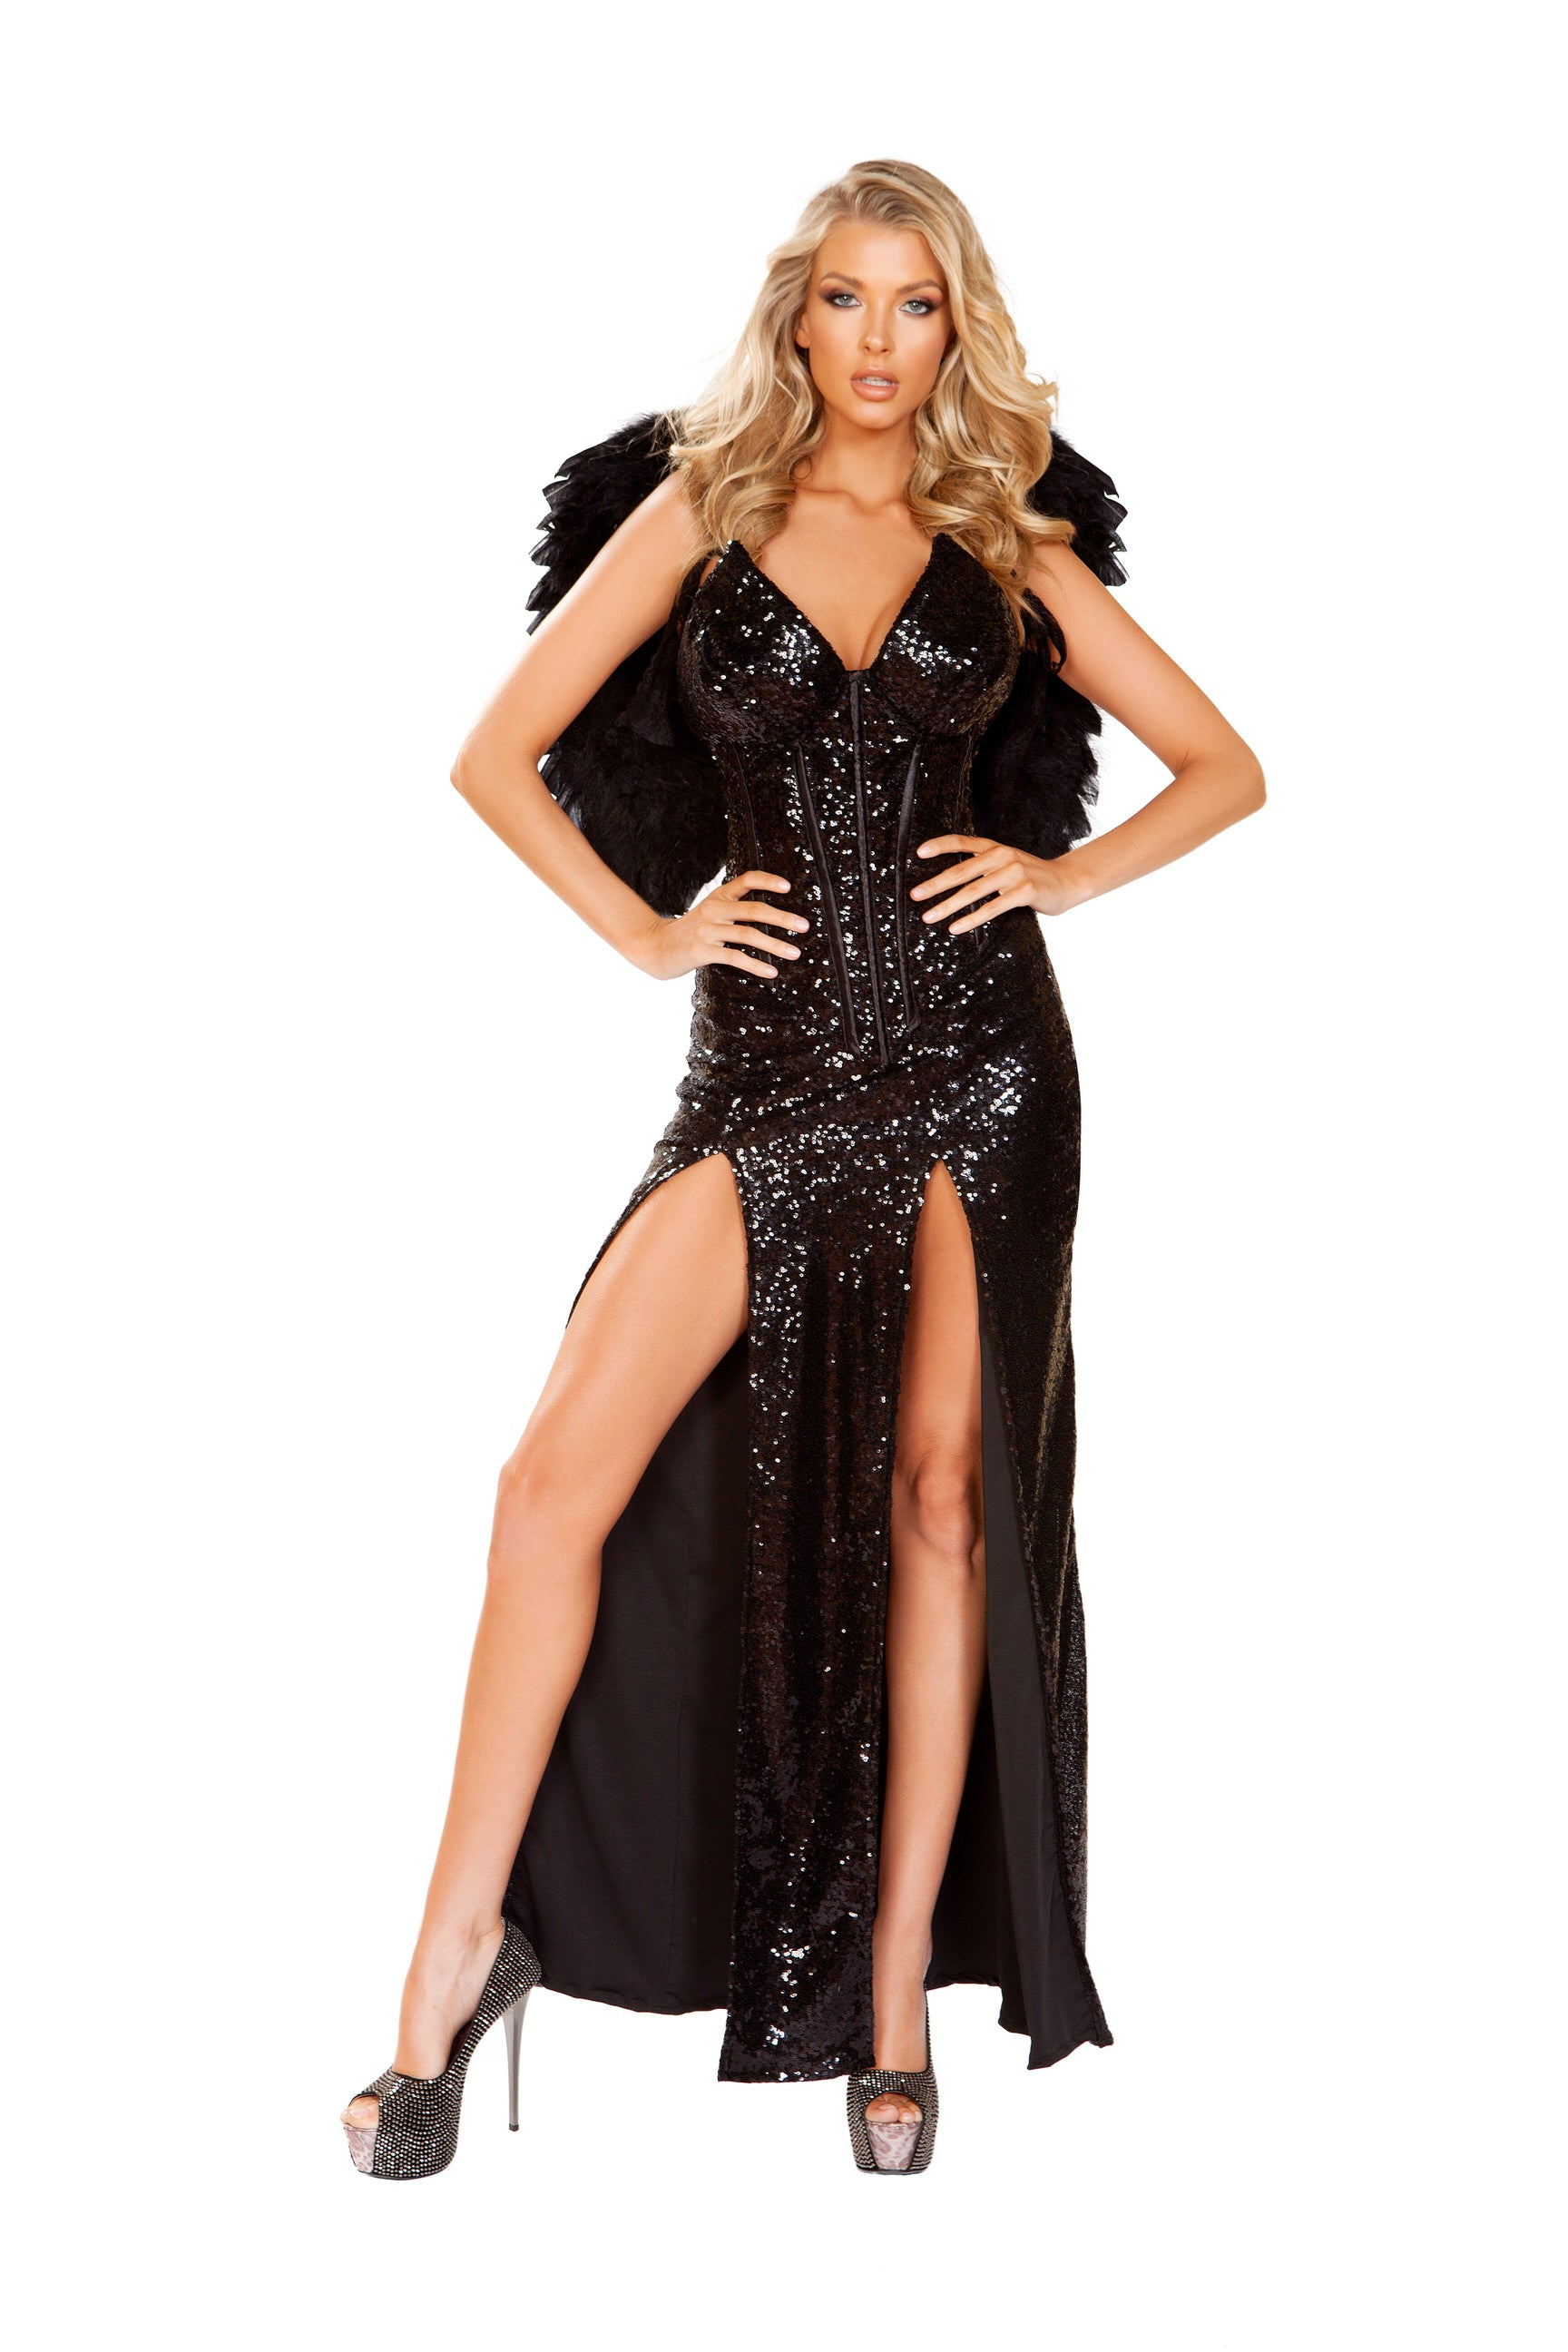 4912 - 2pc Wicked Dark Angel ${description} | Roma Costume and Roma Confidential wholesale manufacturer of Women Apparel bulk world wide wholesale and world wide drop ship services for Adult Halloween Costumes, Sexy and Elegant Lingerie, Rave Clothing, Club wear, and Christmas Costumes. Costumes, Roma Costume, Inc., Roma Costume, Roma Confidential, Wholesale clothing, drop ship, drop ship service, Wholesale Lingerie, Wholesale Adult Halloween Costumes, Rave Clothing, EDM Clothing, Festival Wear, Christmas Costumes, Clubwear, Club wear.